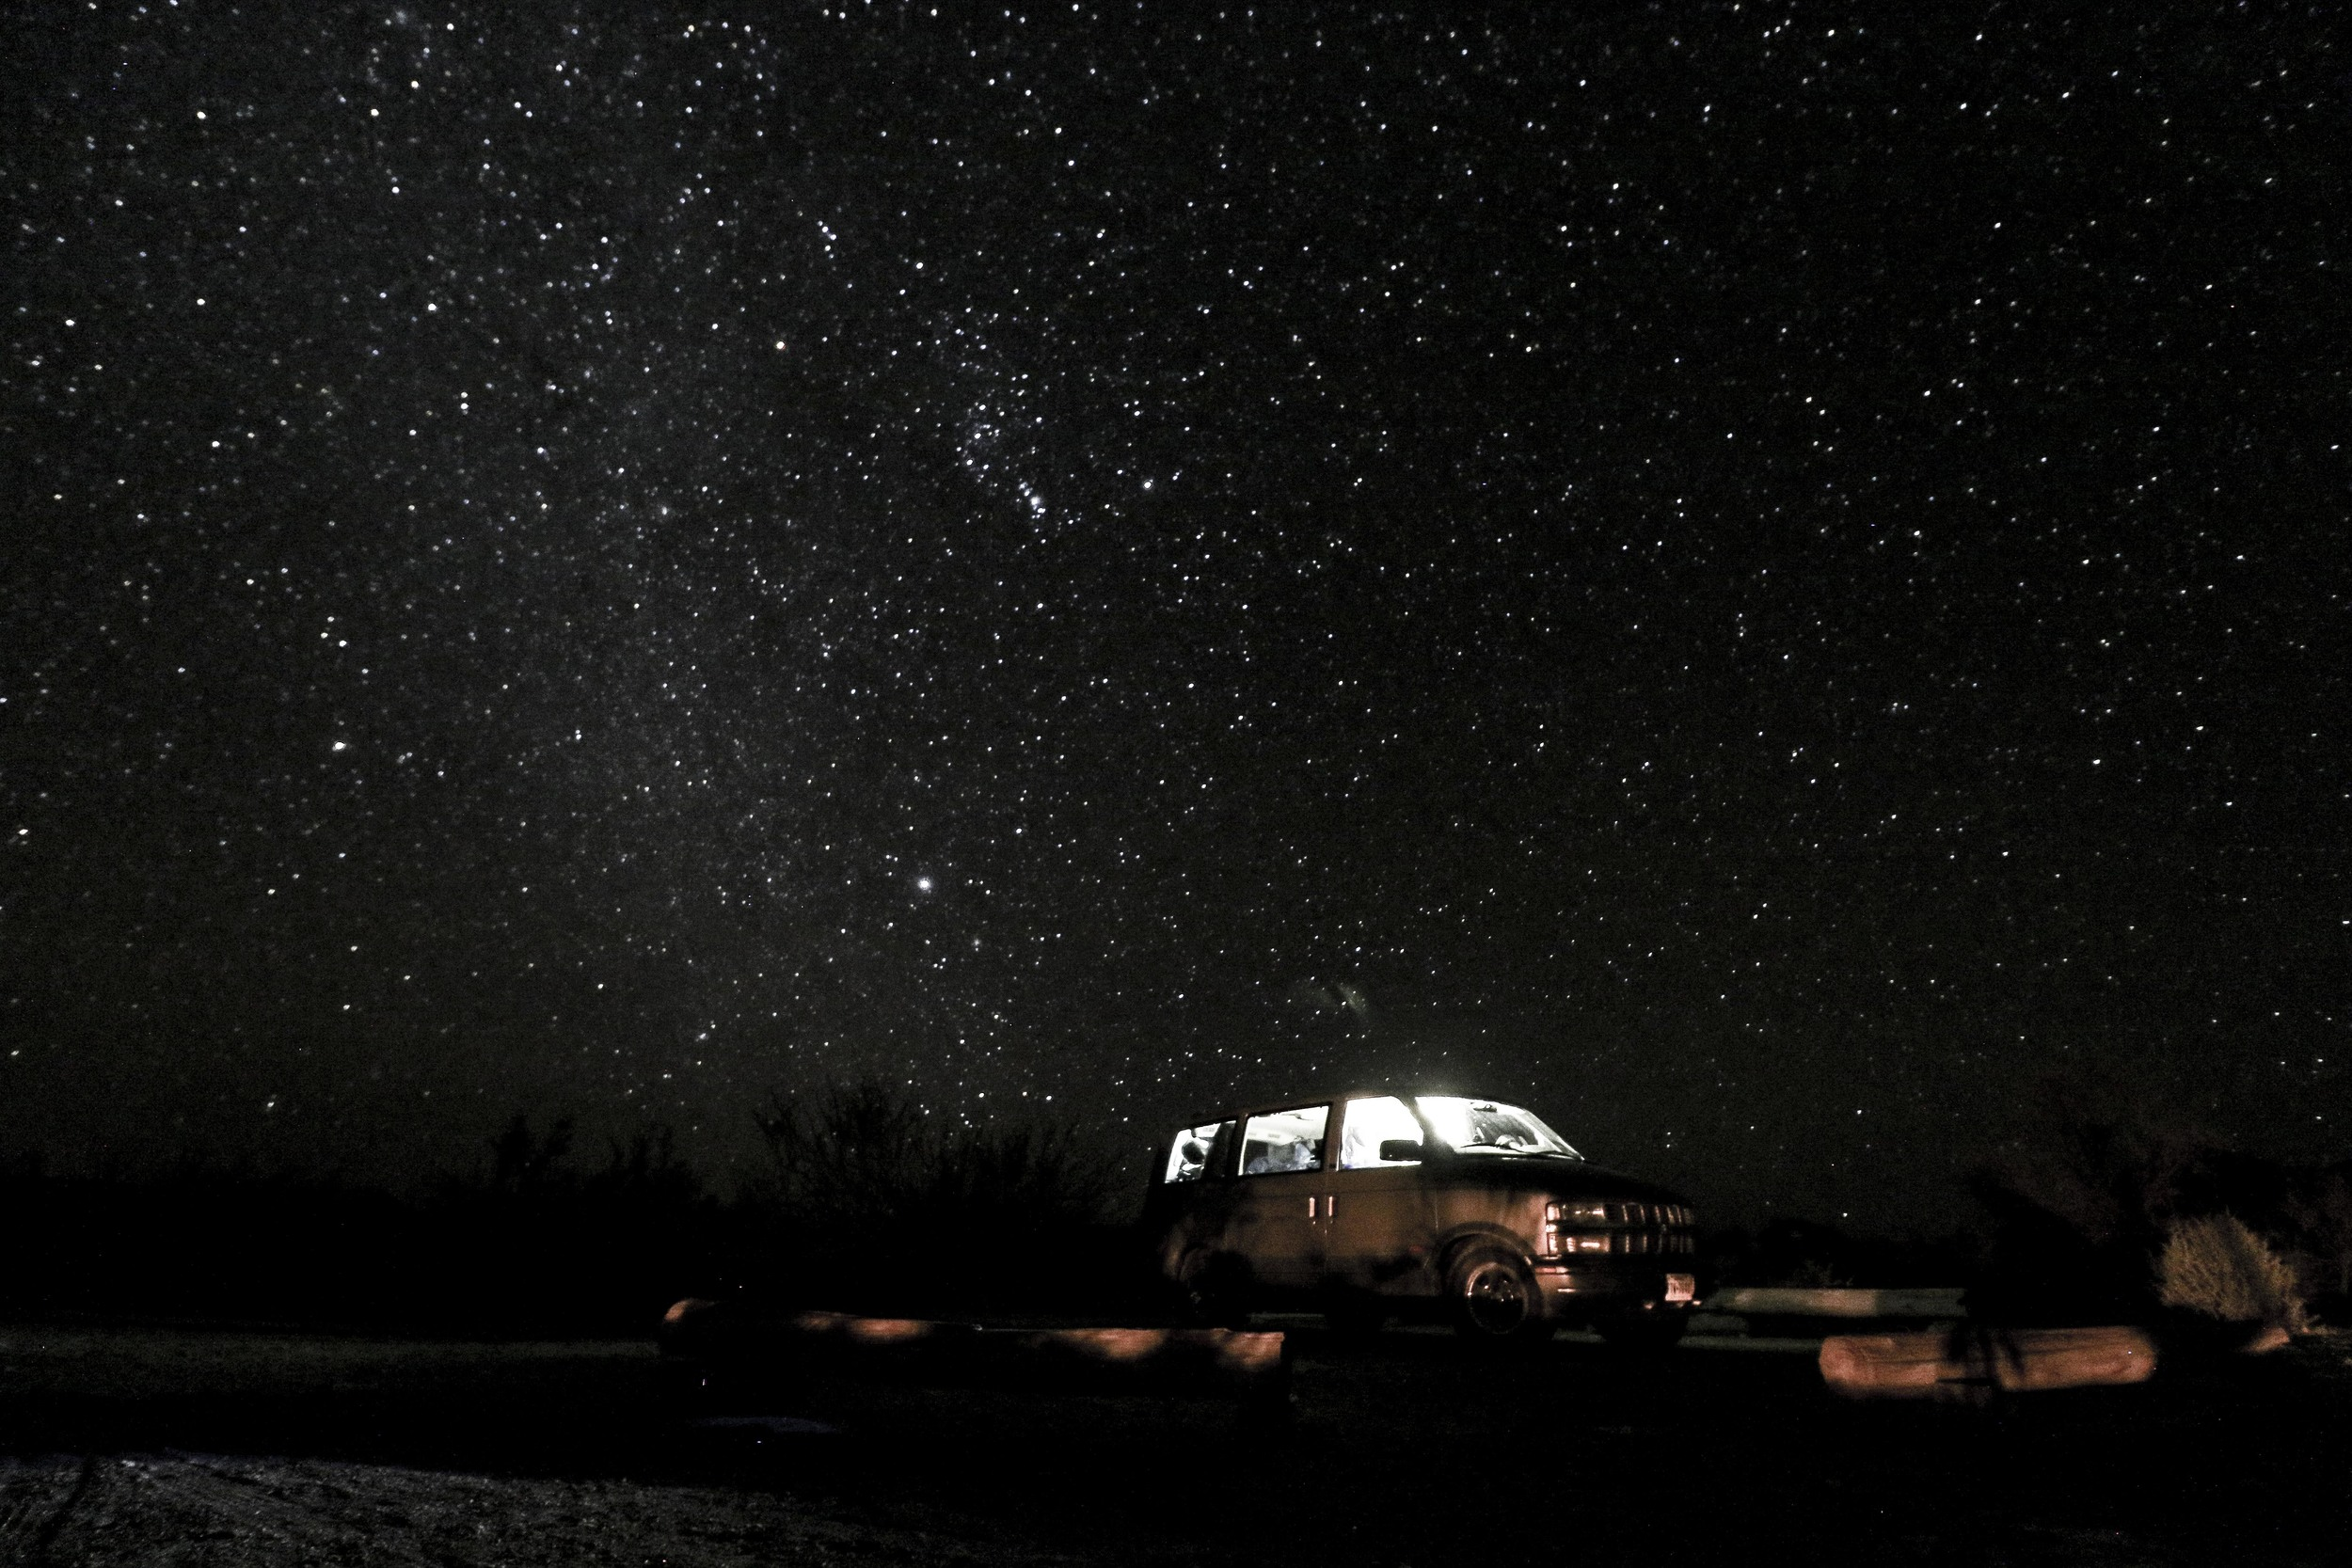 Eddie parked under the stars in Big Bend National Park during our first week on the road.